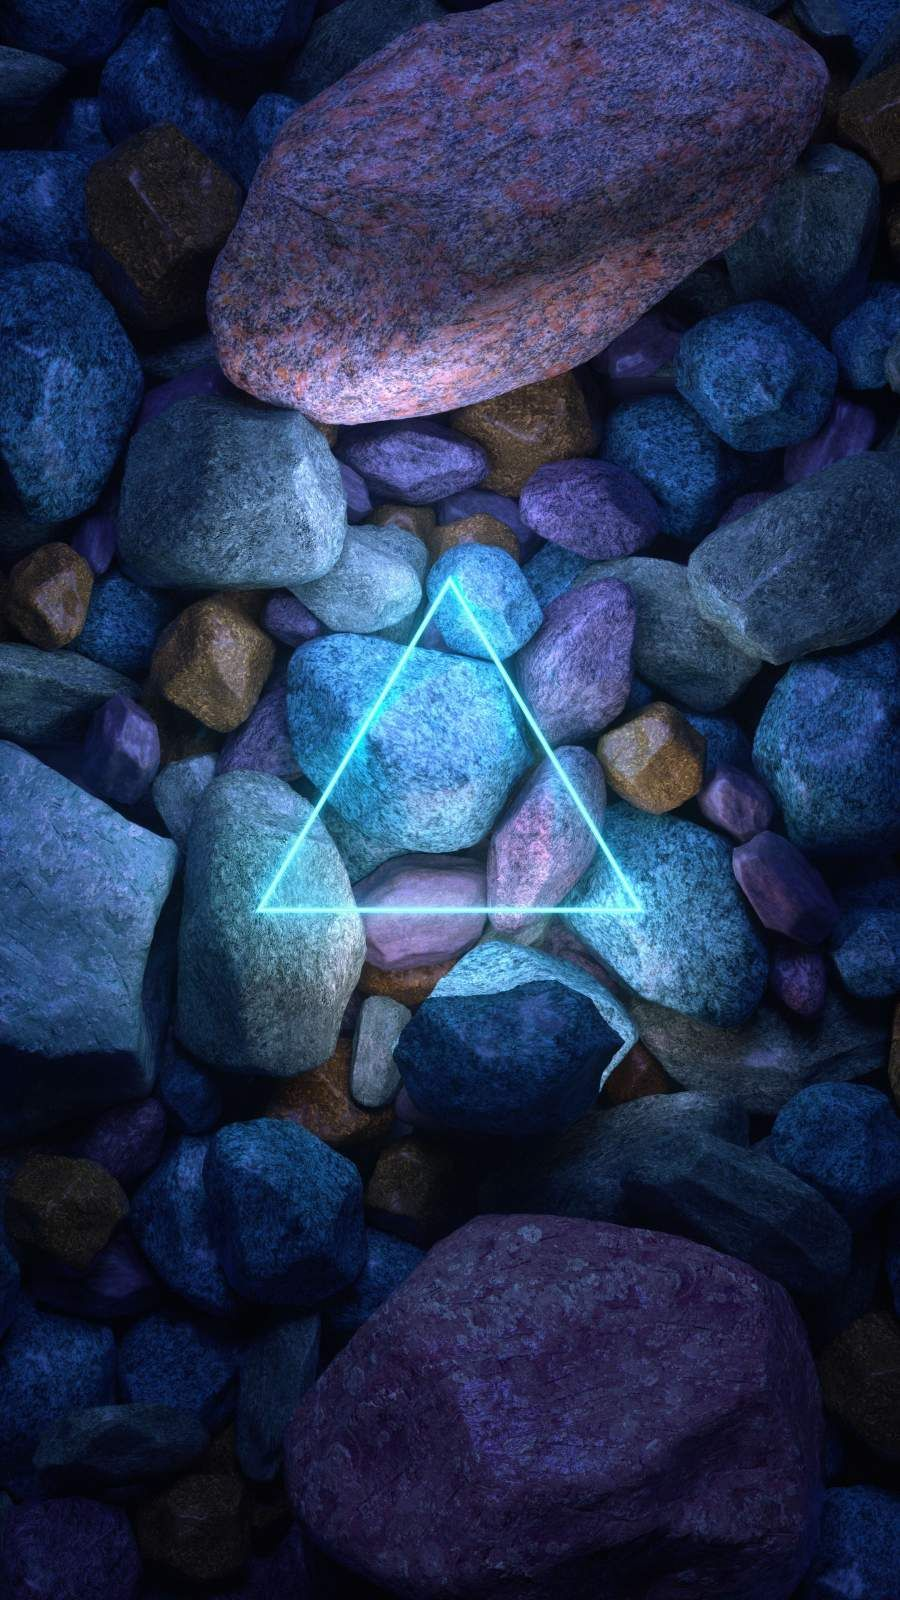 Neon Stone Triangle iPhone Wallpaper - iPhone Wallpapers